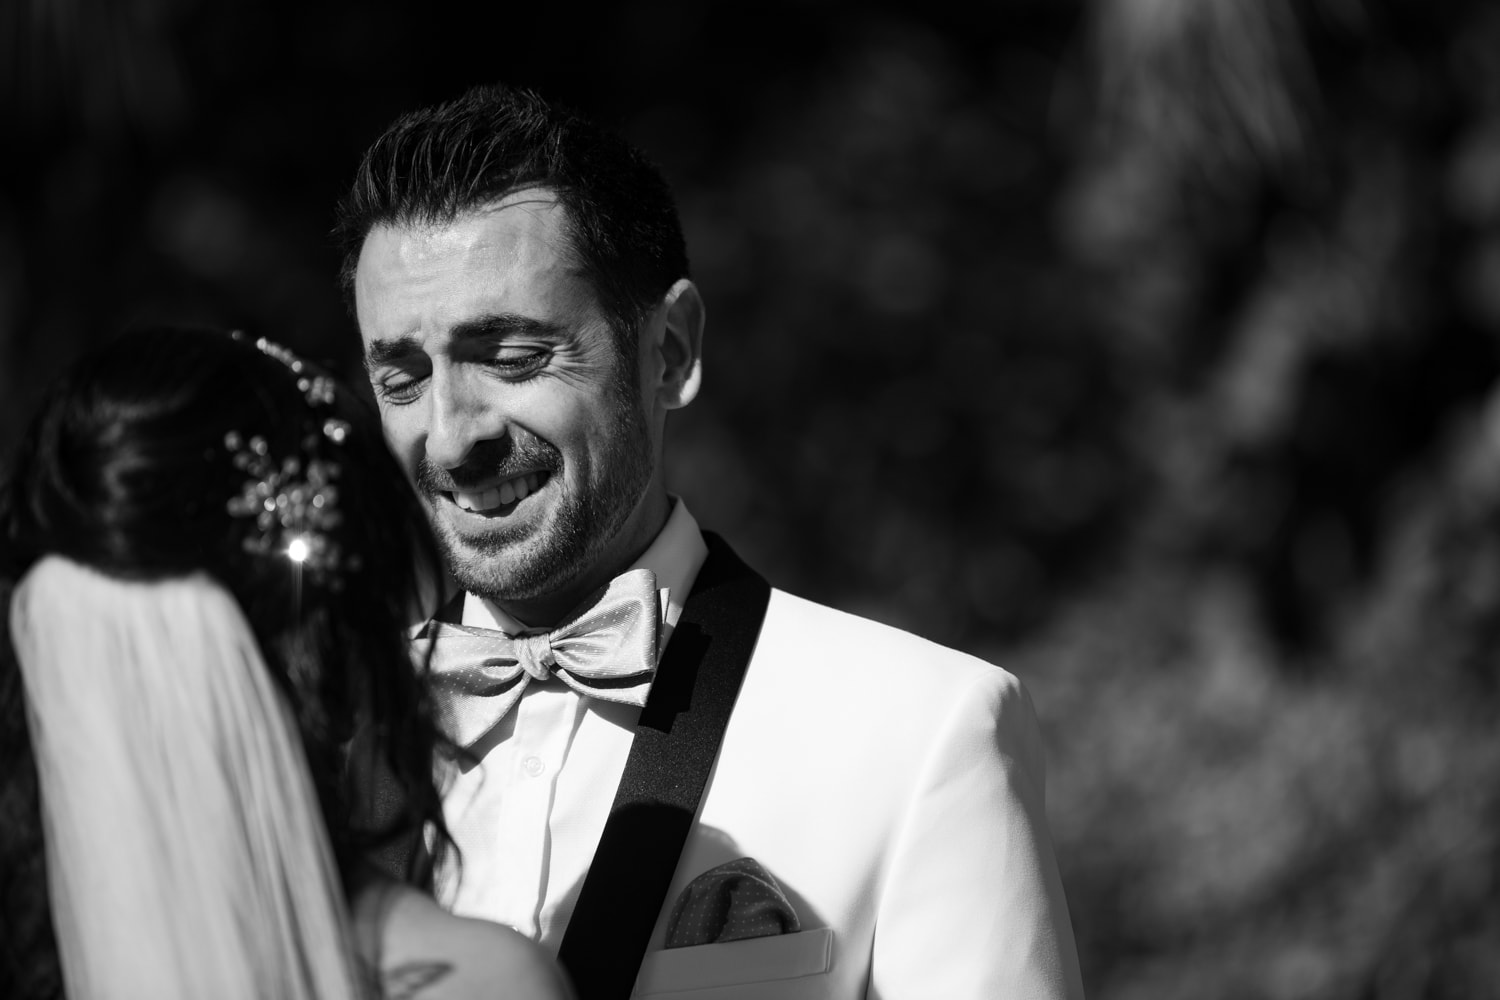 Grooms reaction to seeing bride for first time at The Grand Tradition.